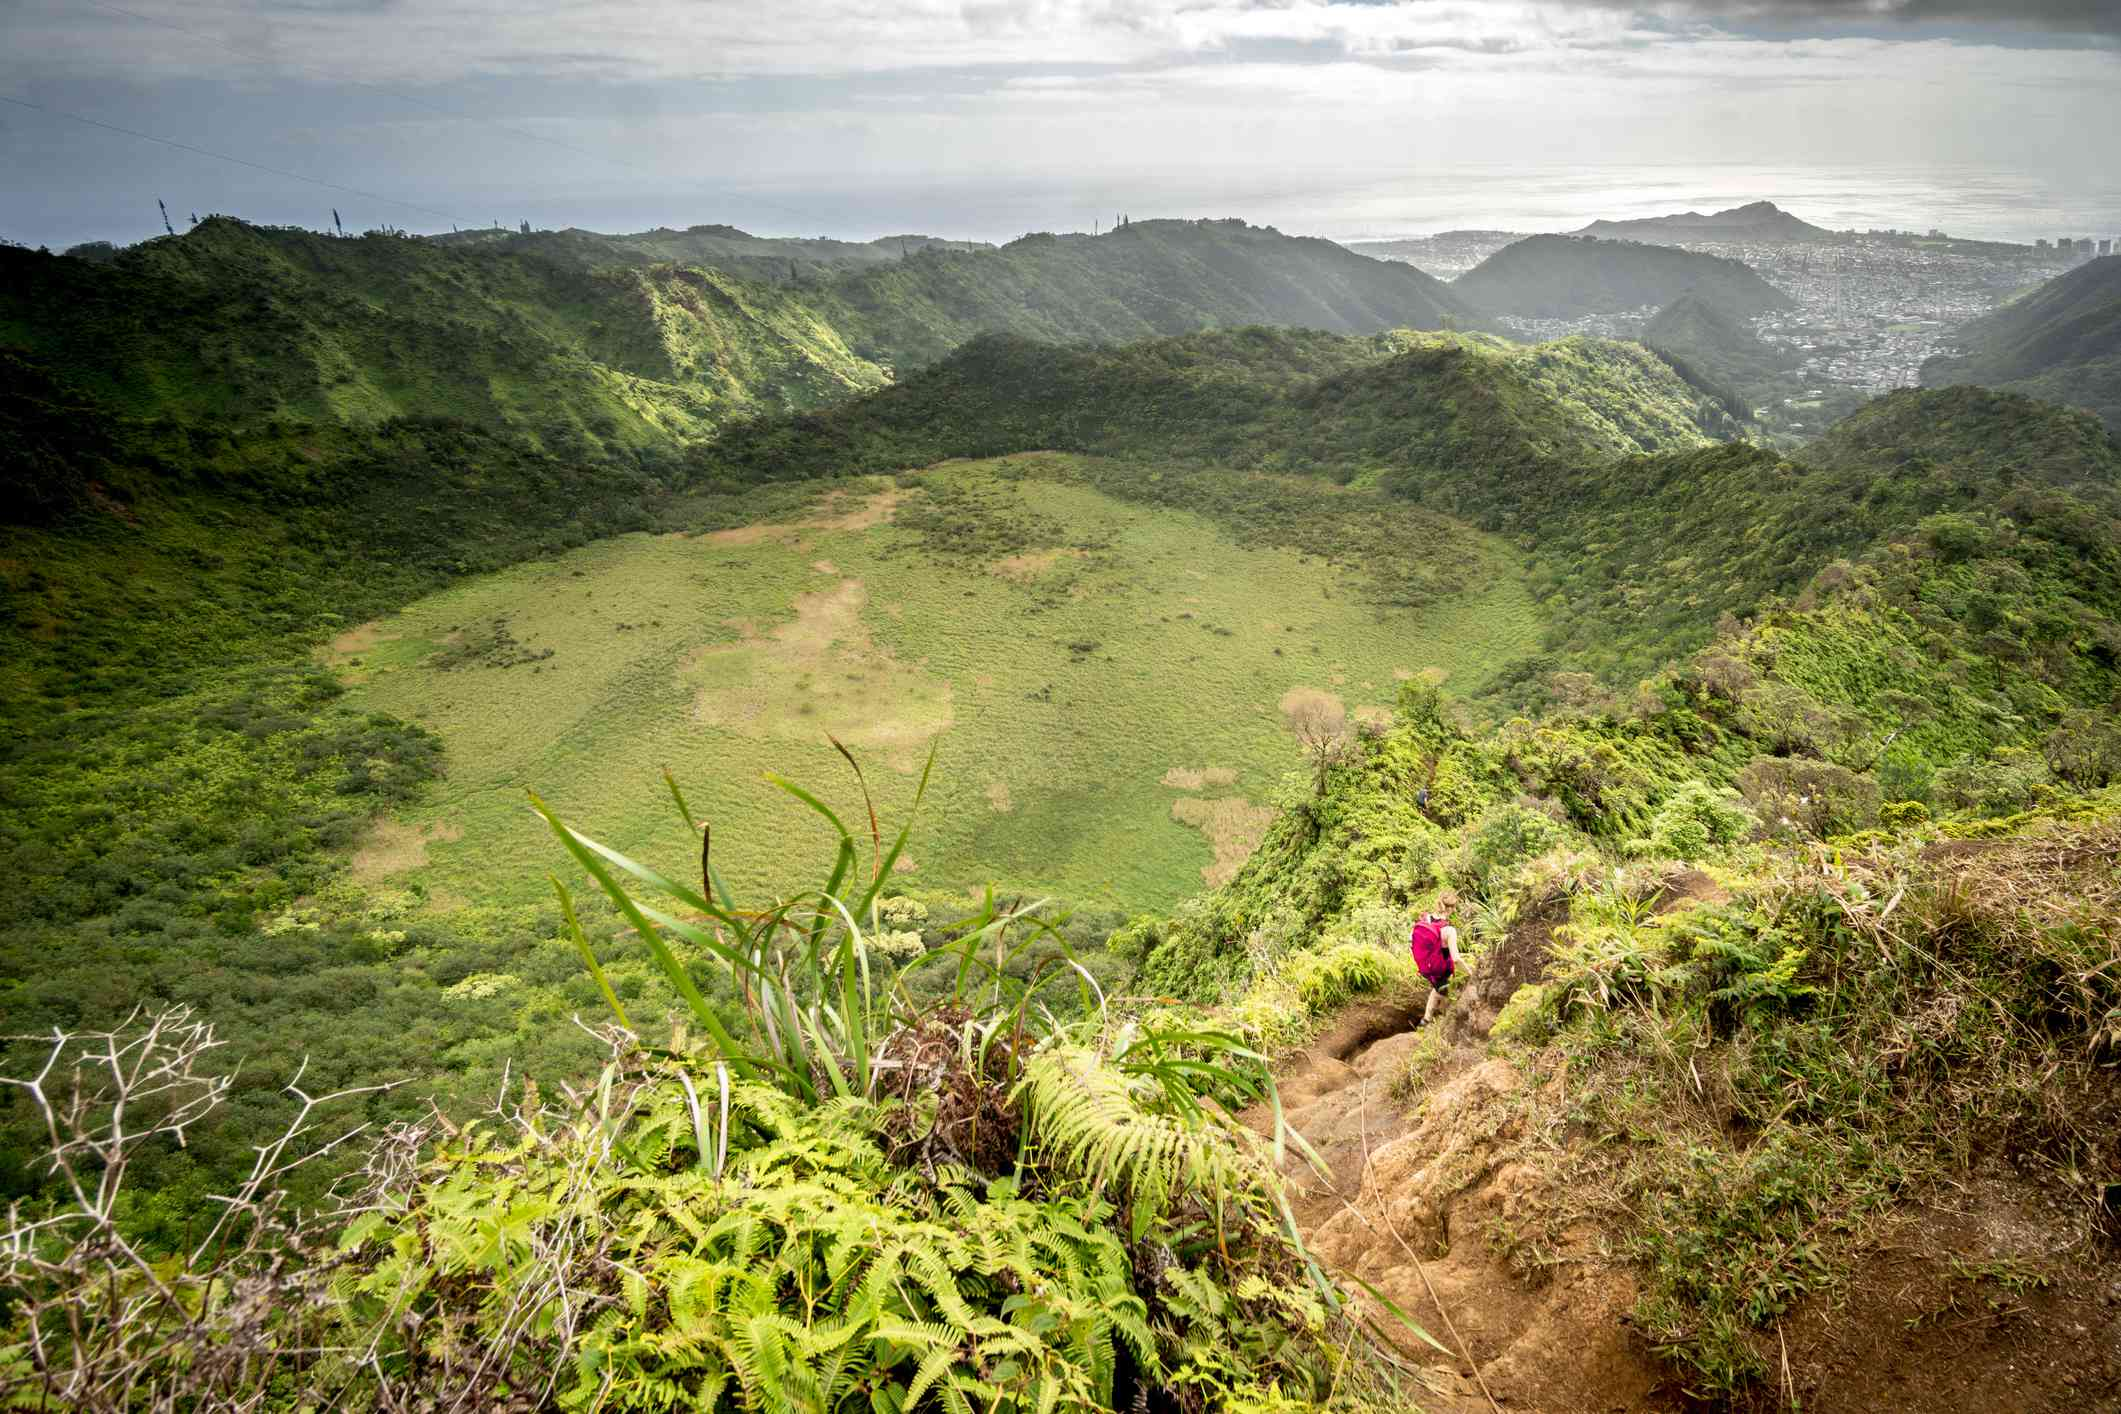 A woman with a backpack hikes along the Ka'au Crater Trail